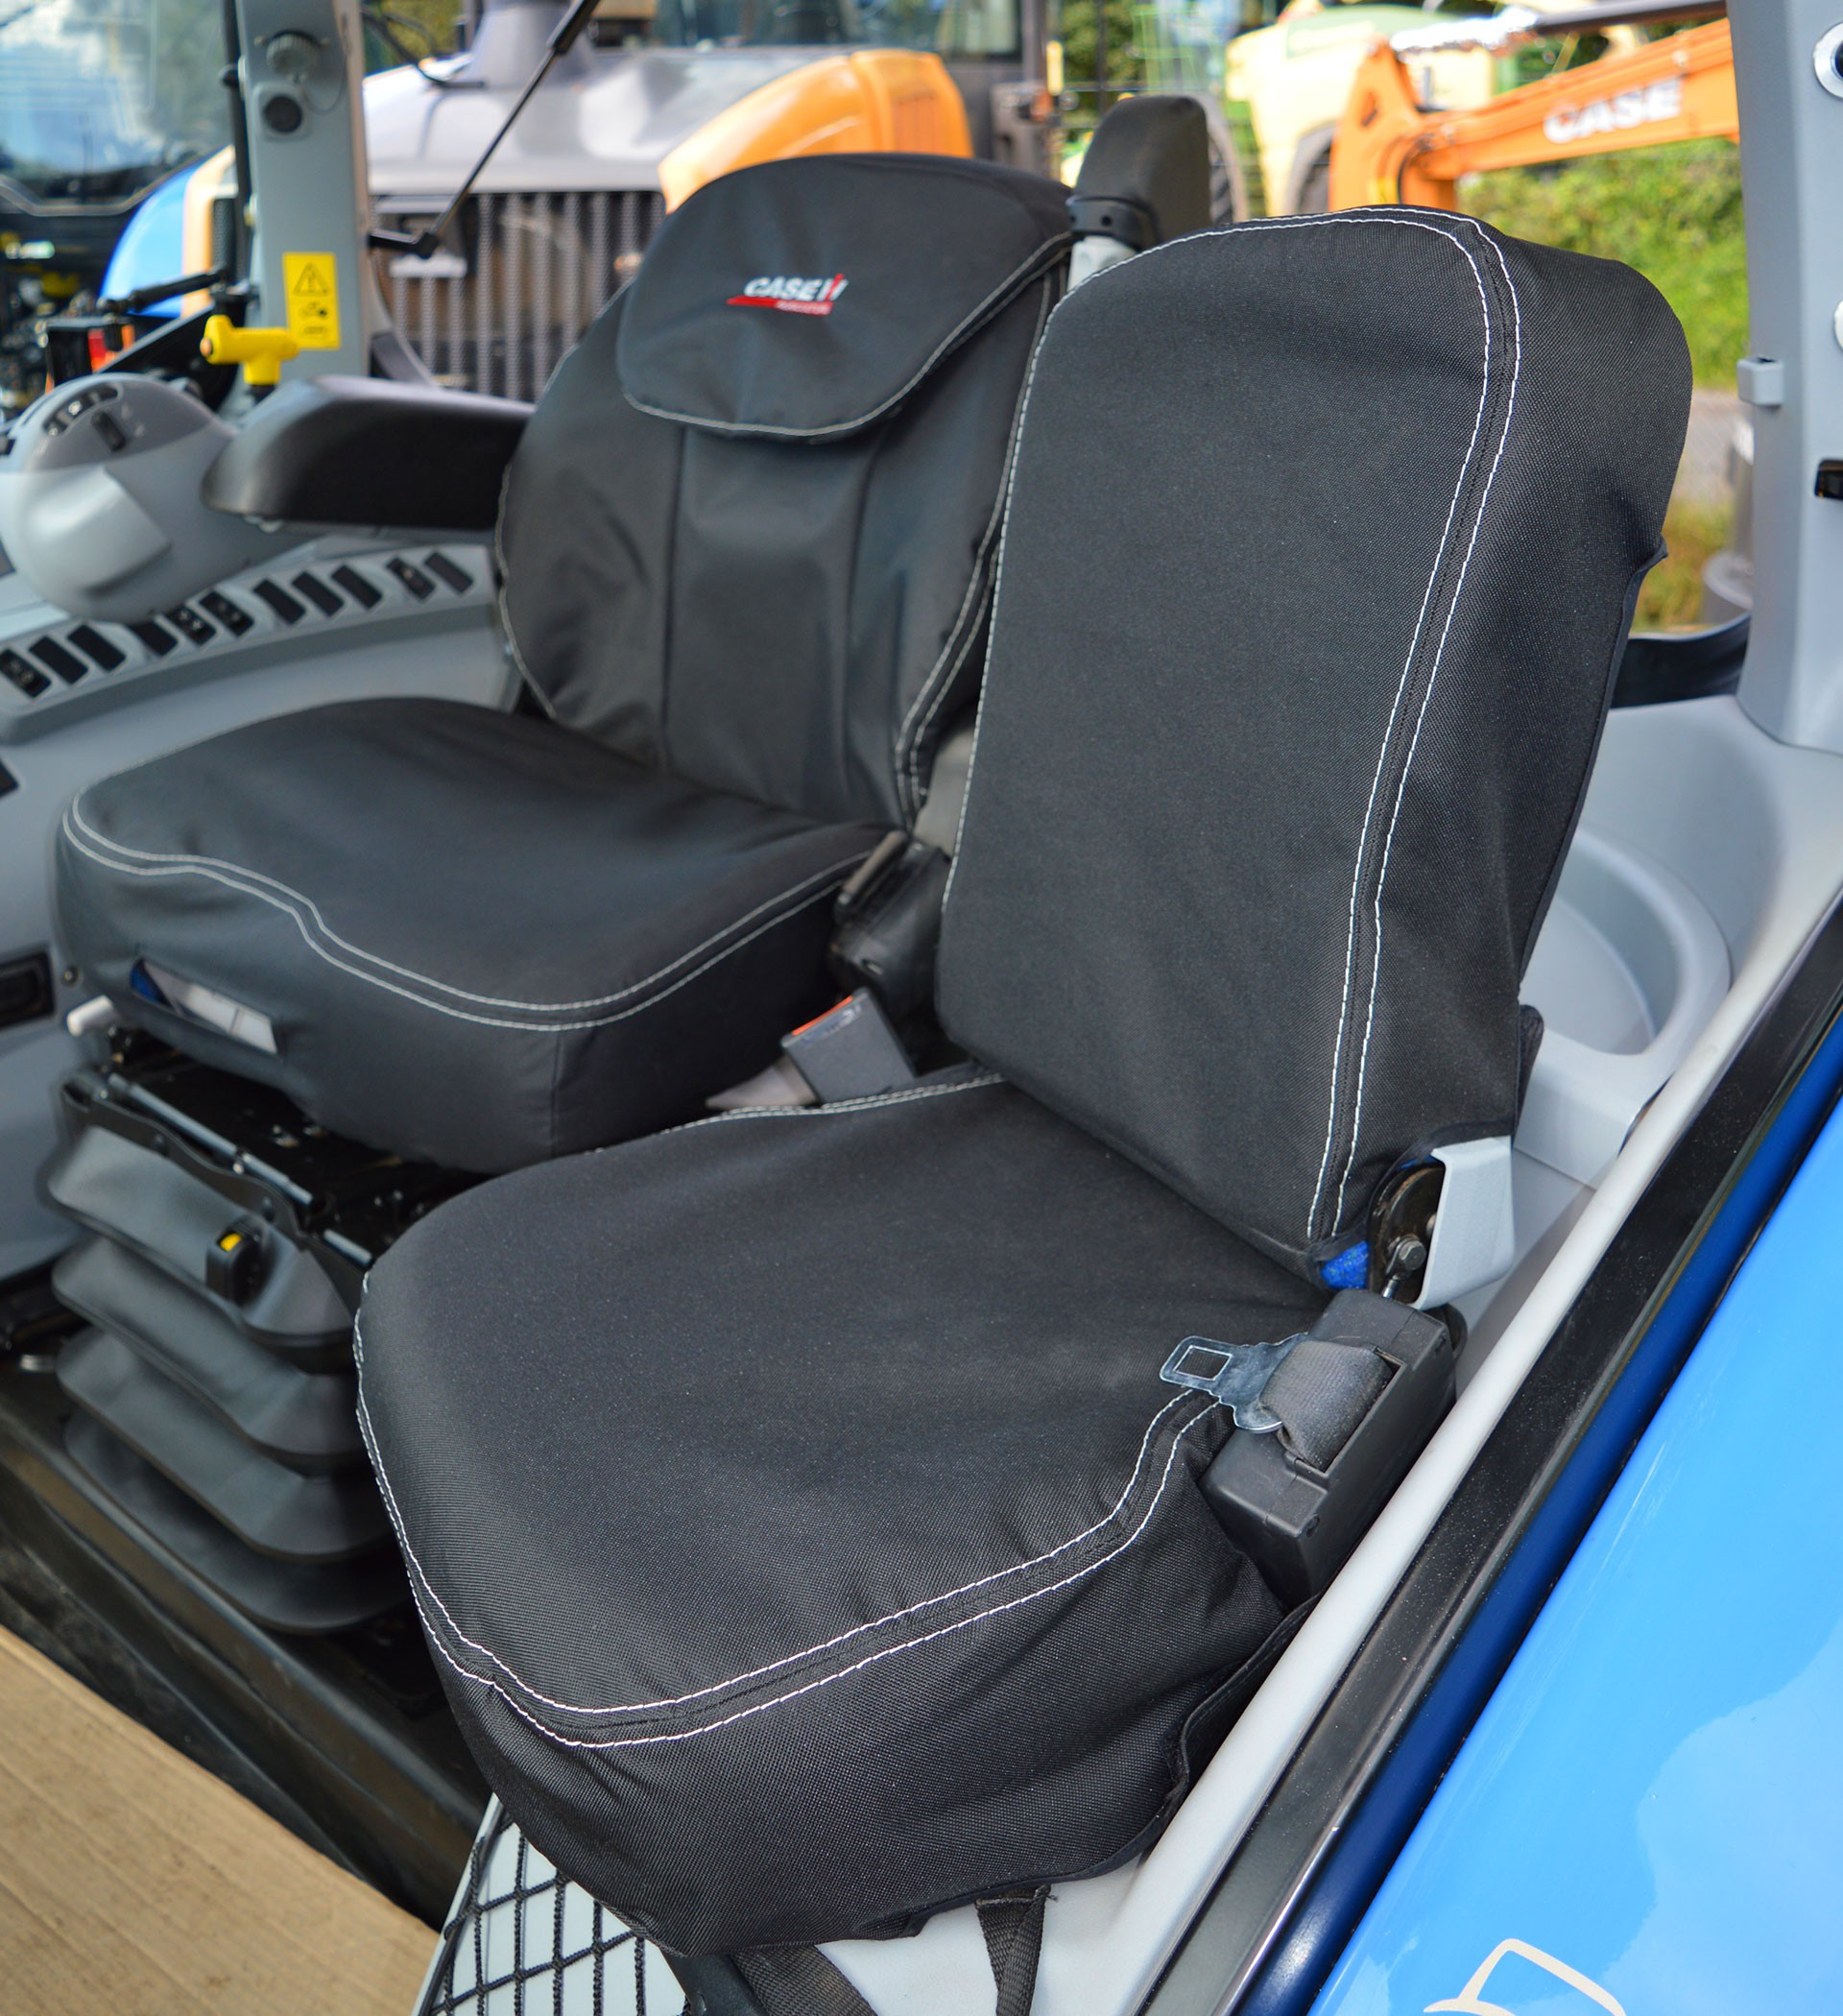 Case waterproof heavy duty seat covers